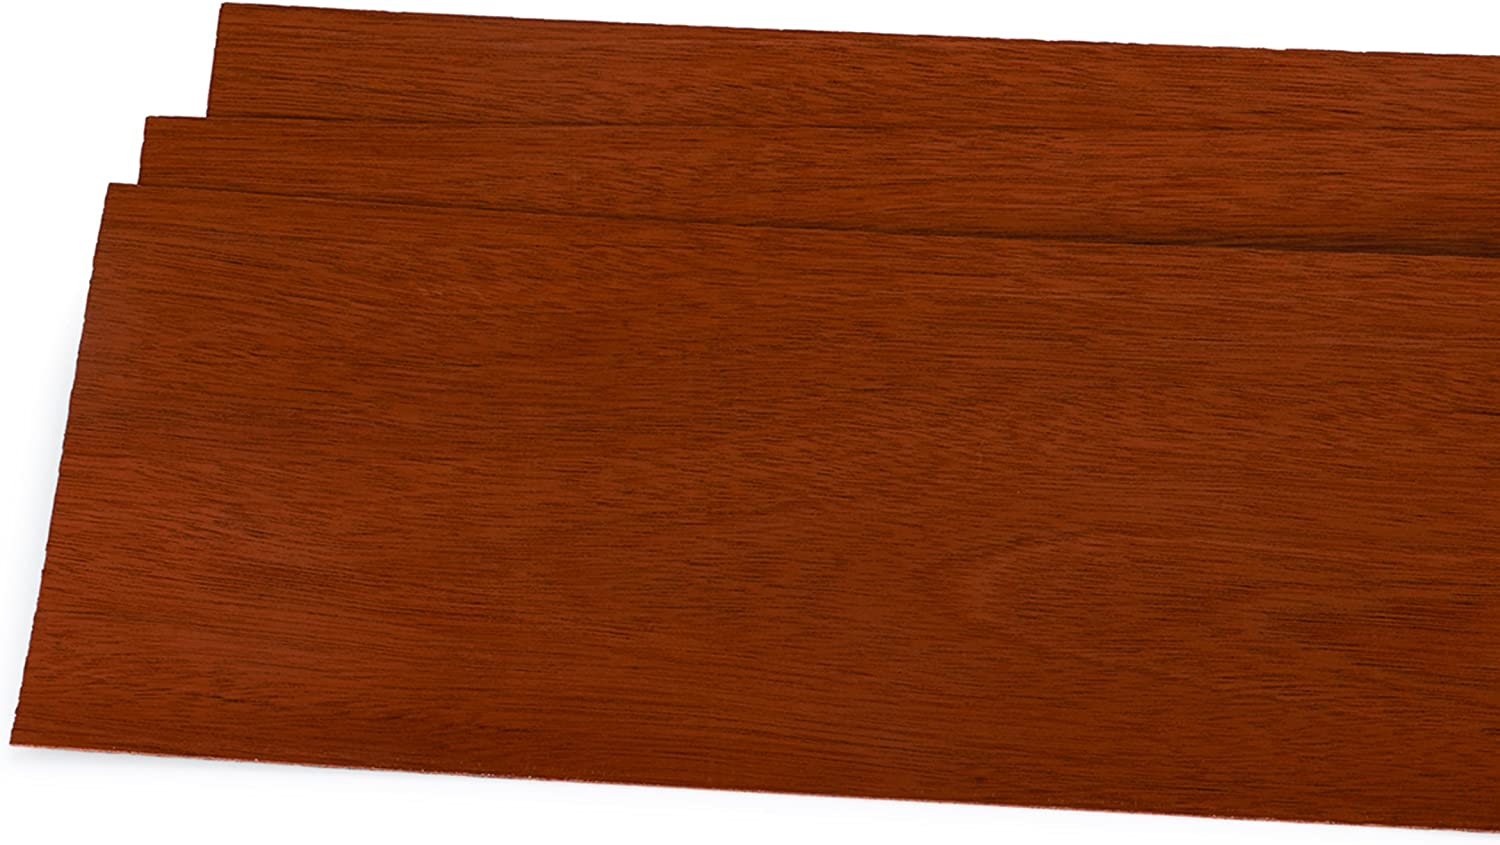 Mahogany Veneer Pack of 3 Sq. Ft x to 2'' 4-1 1 Ranking TOP6 Our shop most popular 7-1 24''